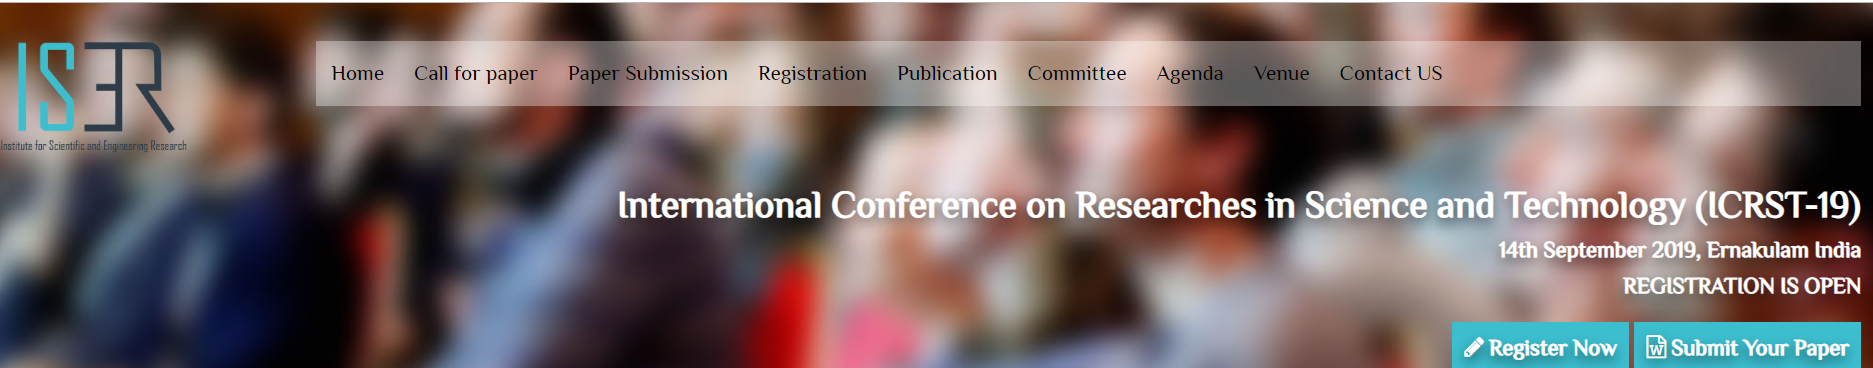 International Conference on Researches in Science and Technology (ICRST-19), Ernakulam, Kerala, India